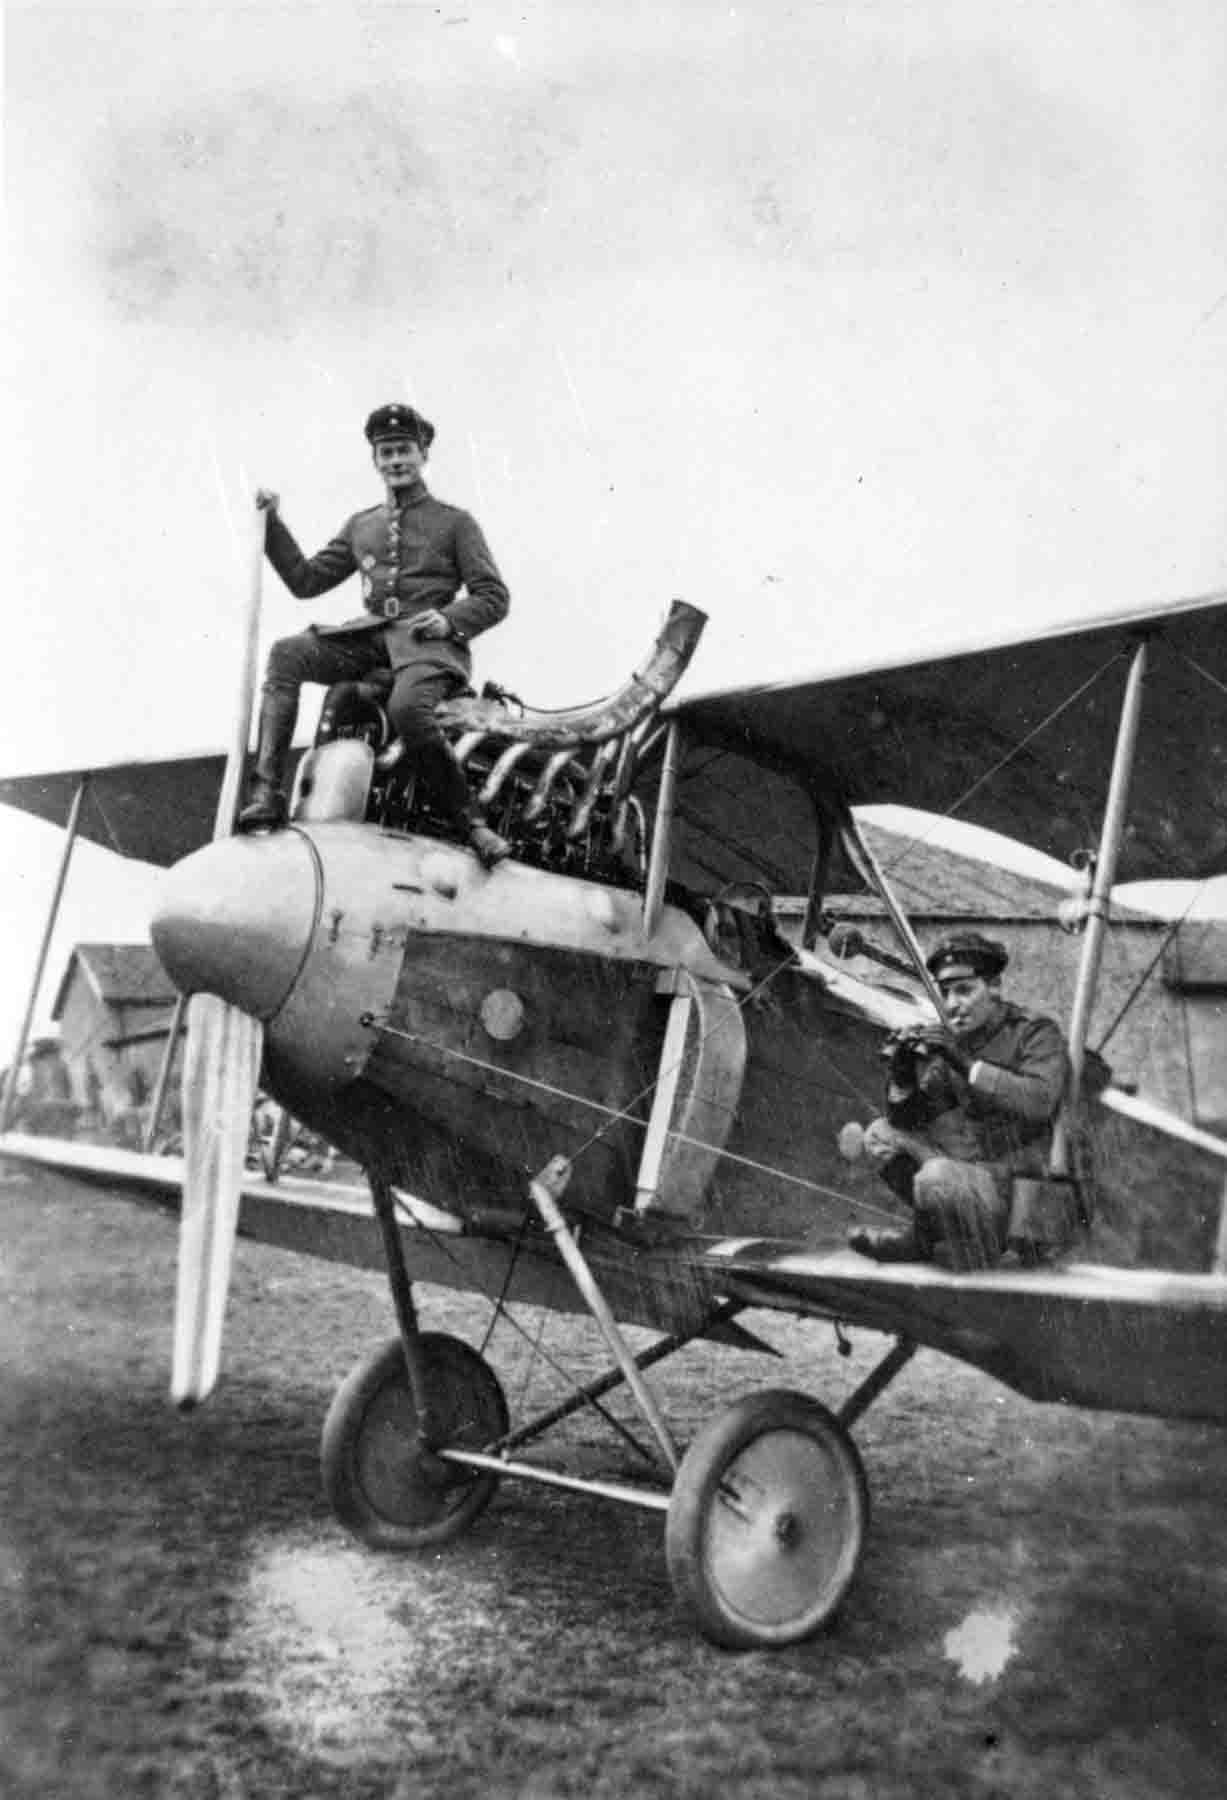 The Albatros C.VII was a reconnaissance aircraft which could carry light bombs